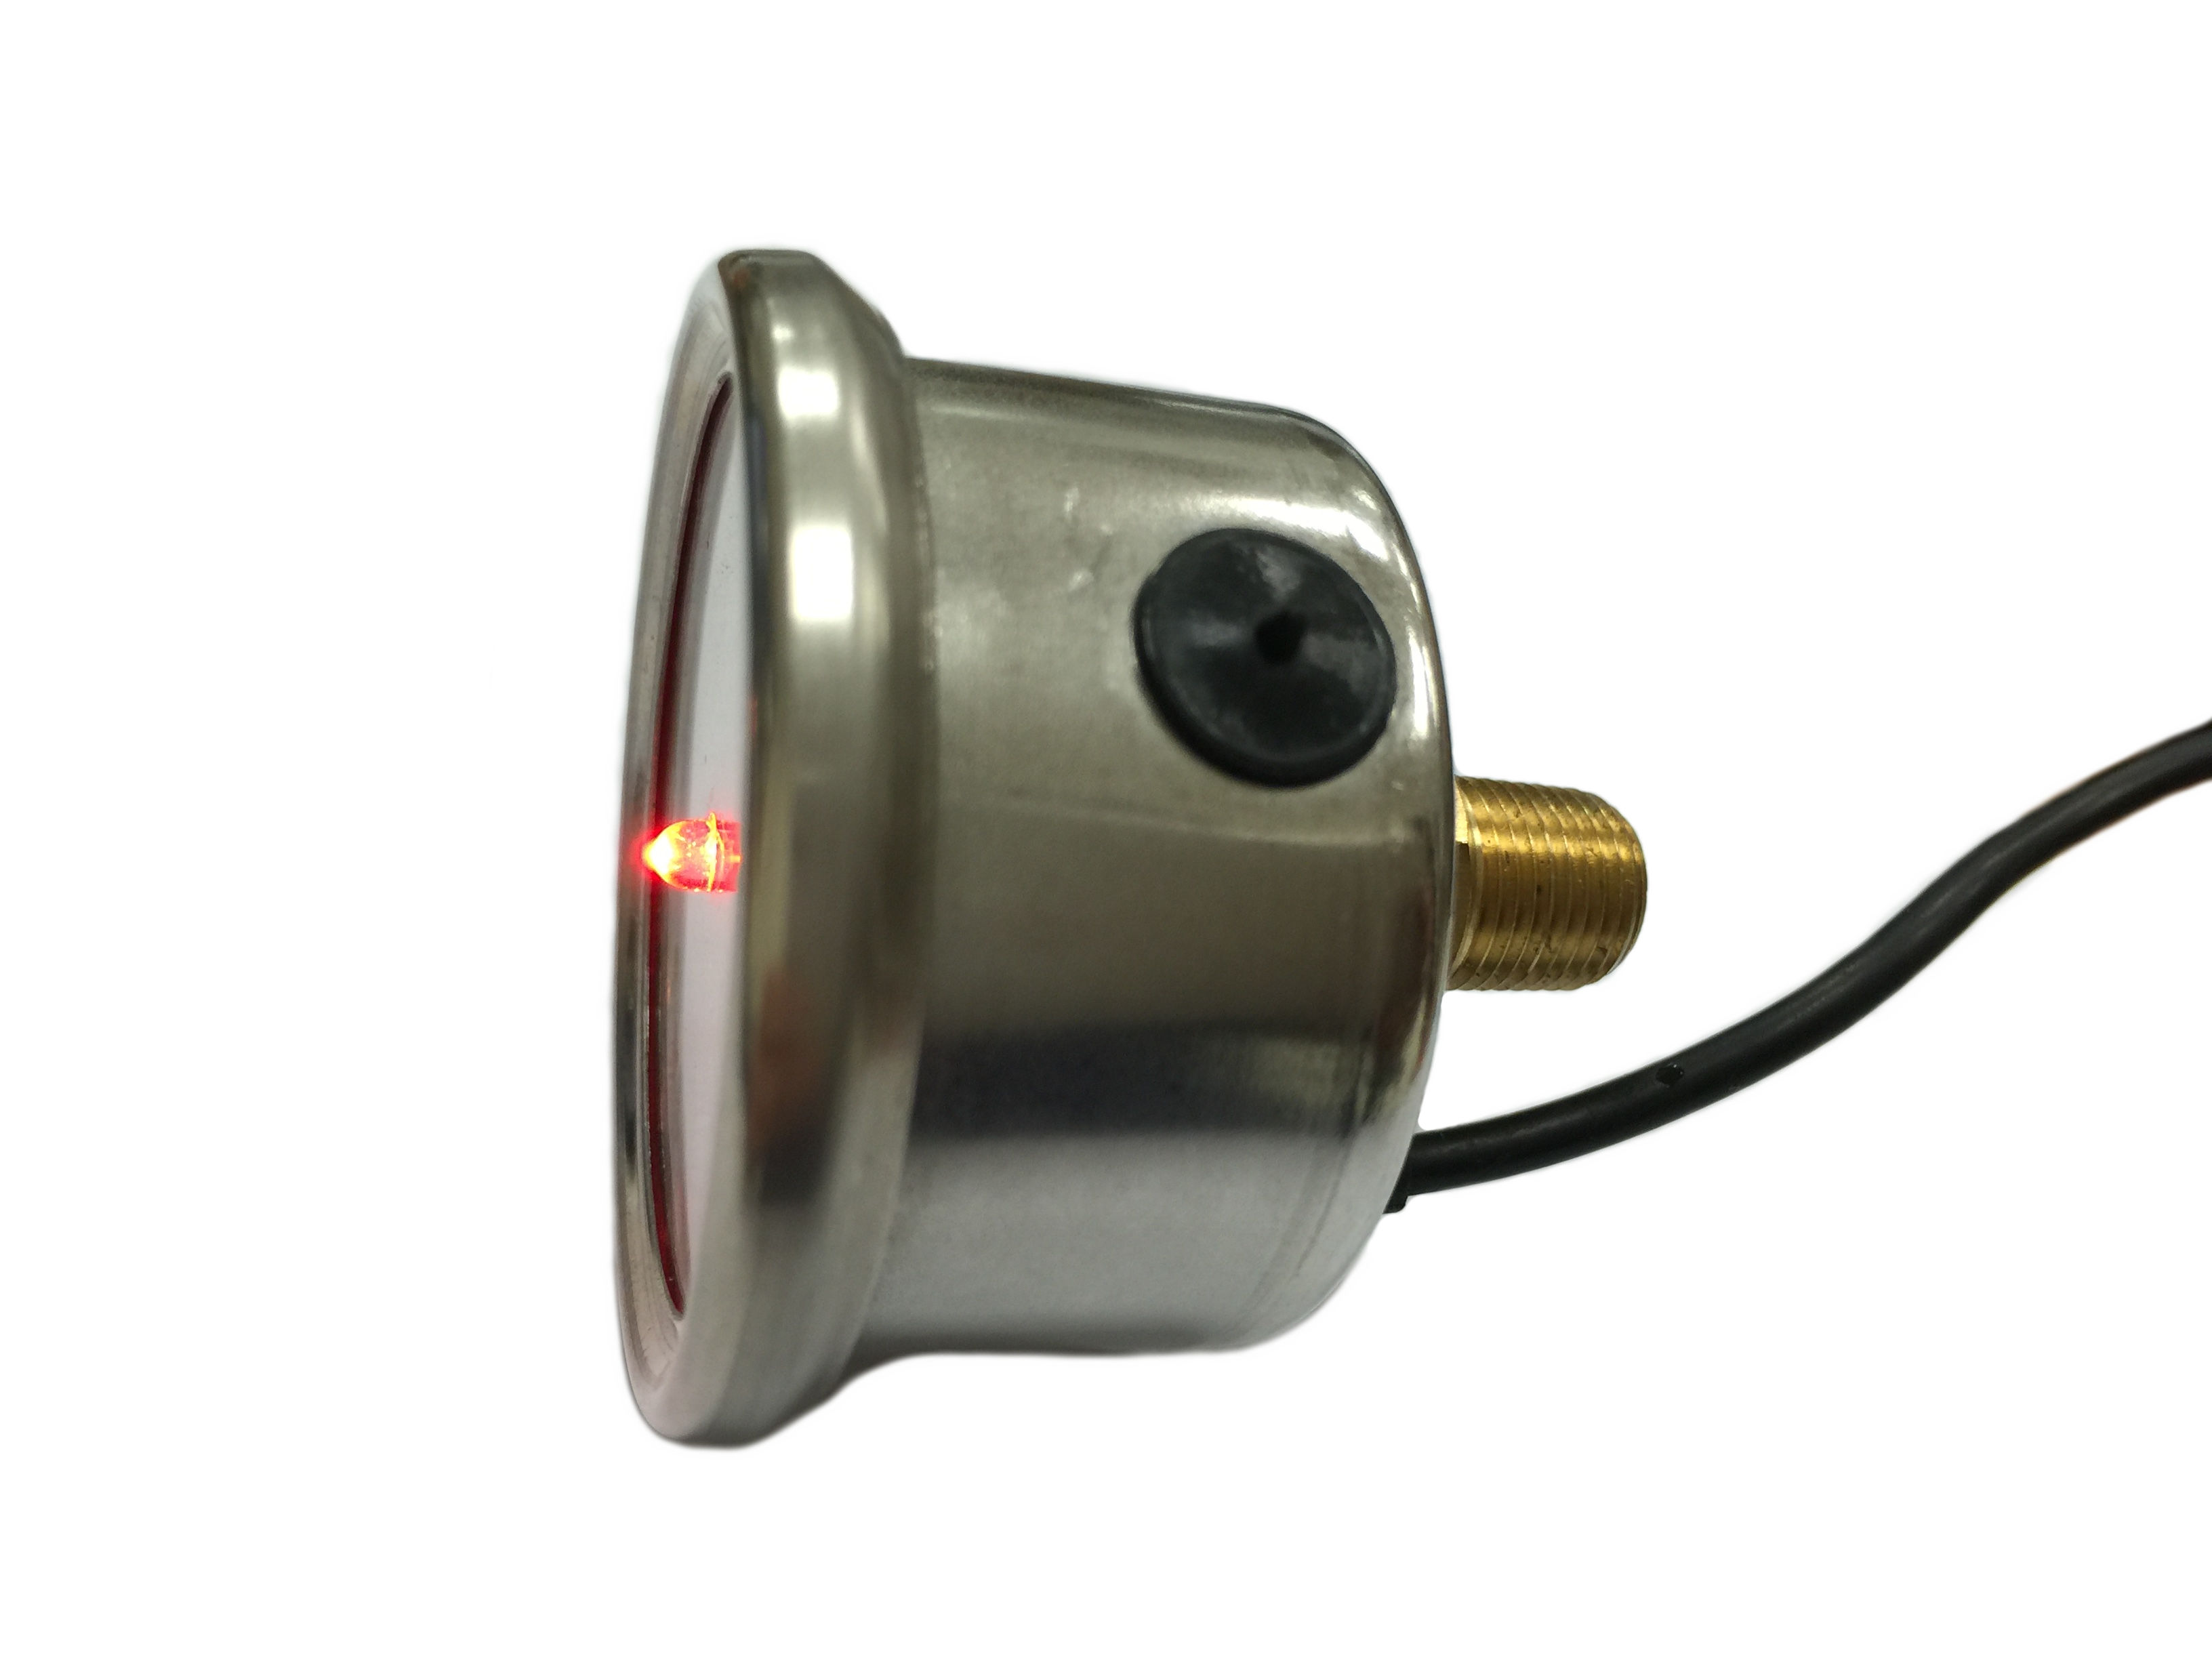 Pressure switch for quick die change system clamps